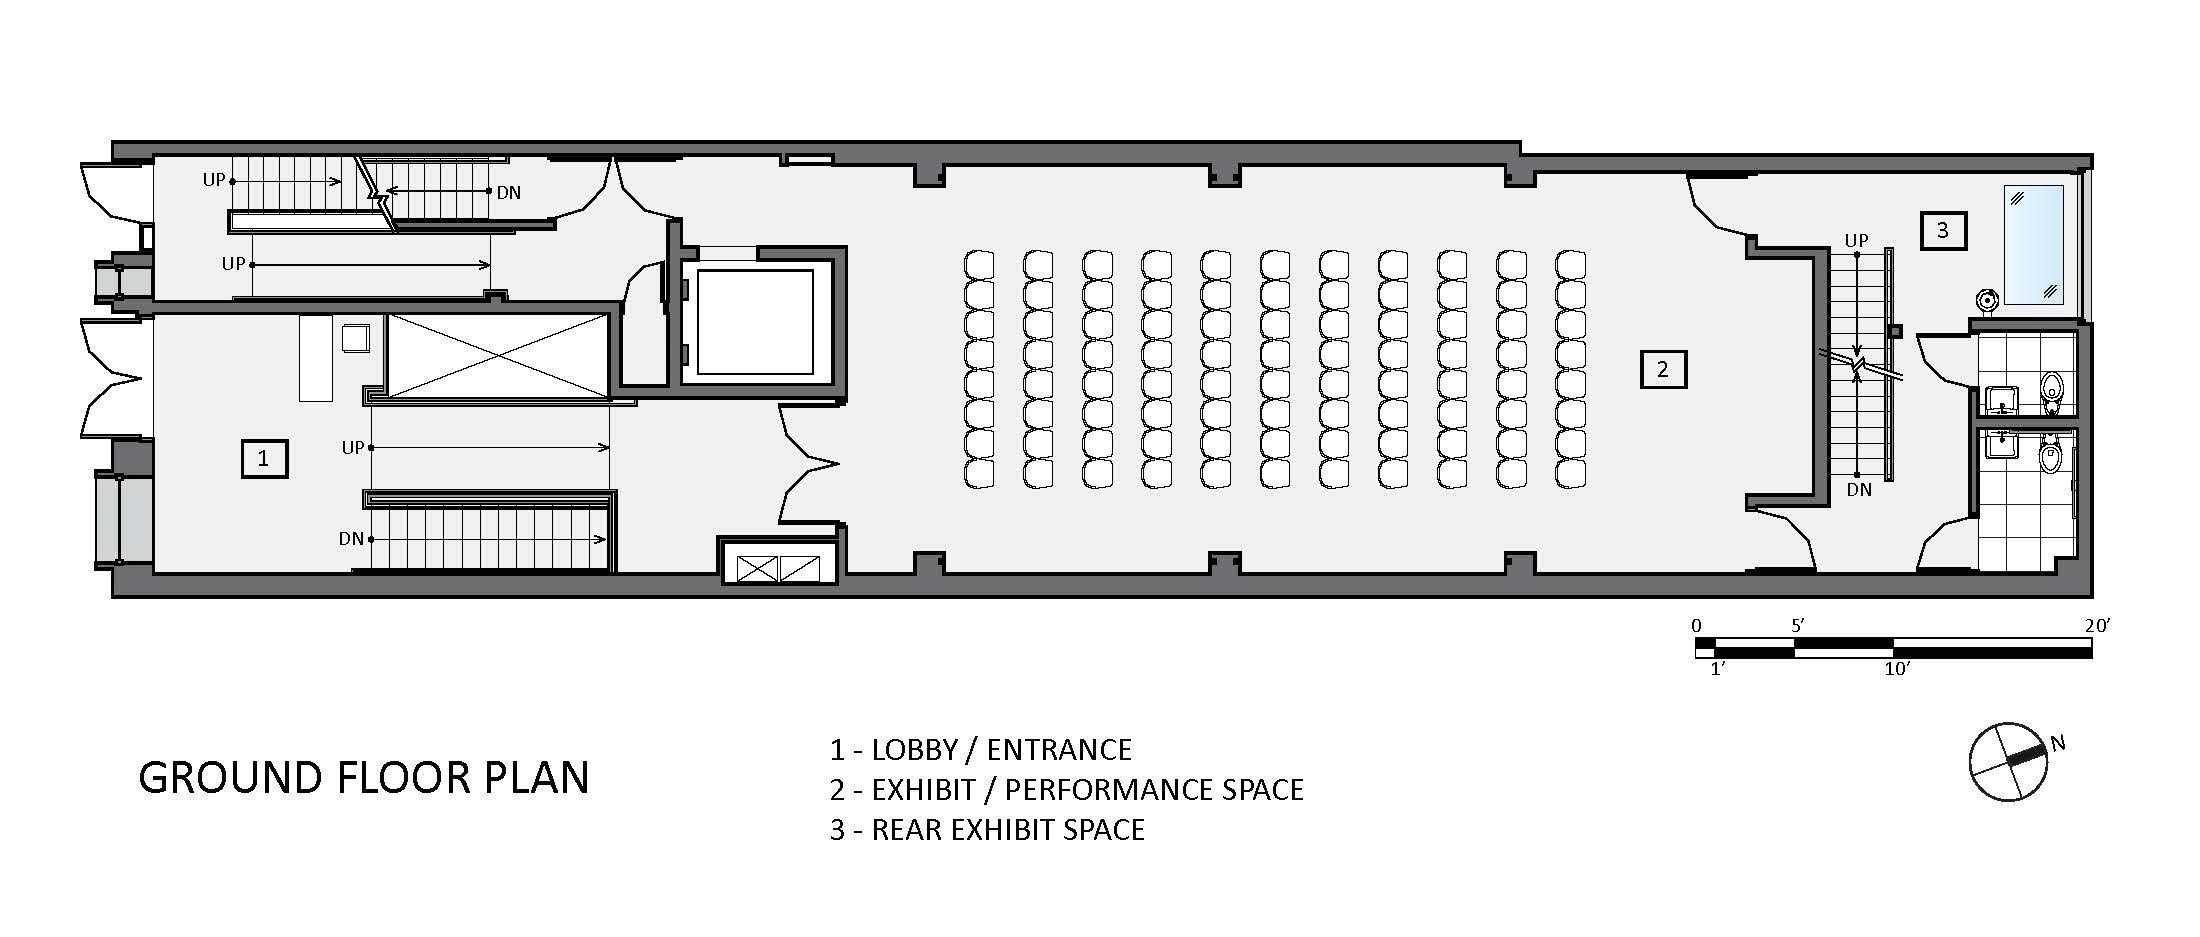 Ground Floor Plan With Details Of The Front And Rear Exhibit